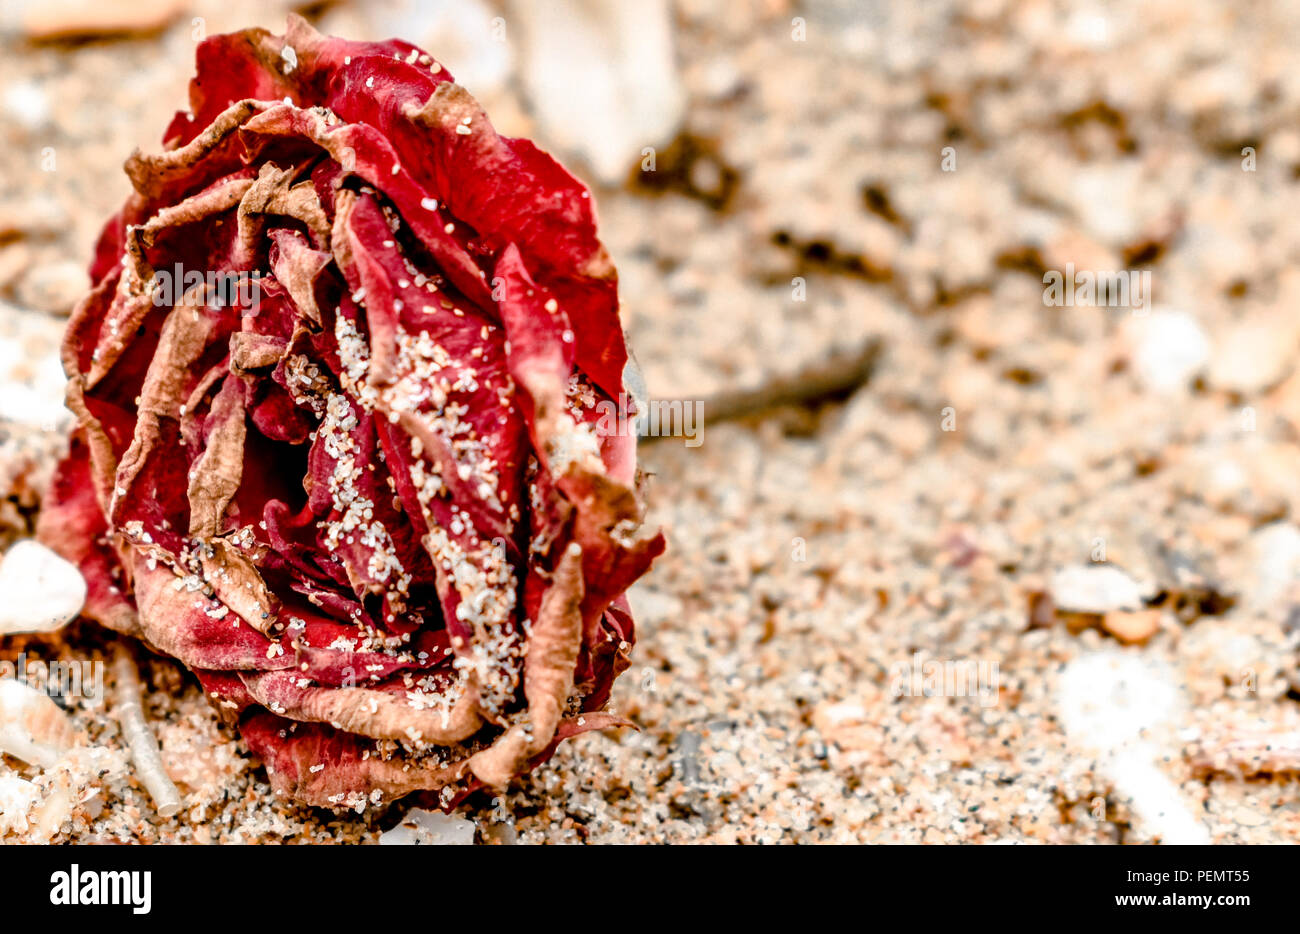 Close up of Dead Rose, red in color, all dried up and lying on the beach, with dry petals covered in sand. like rose on the grave of loved someone. - Stock Image